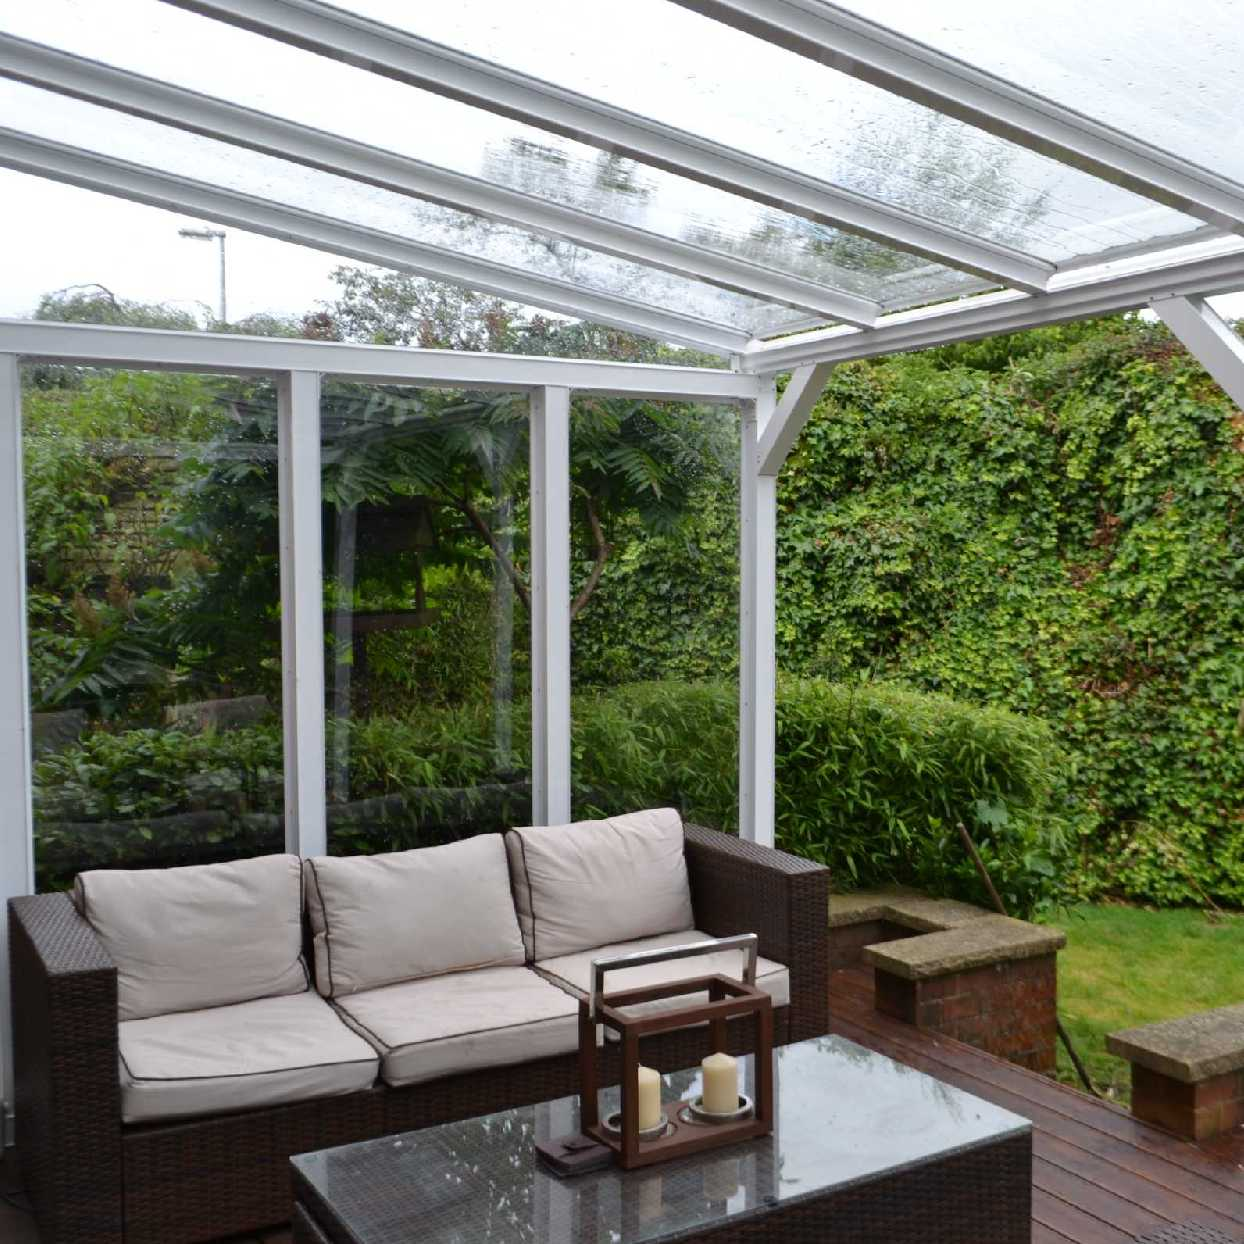 Great selection of Omega Smart Lean-To Canopy with 16mm Polycarbonate Glazing - 5.9m (W) x 4.5m (P), (3) Supporting Posts